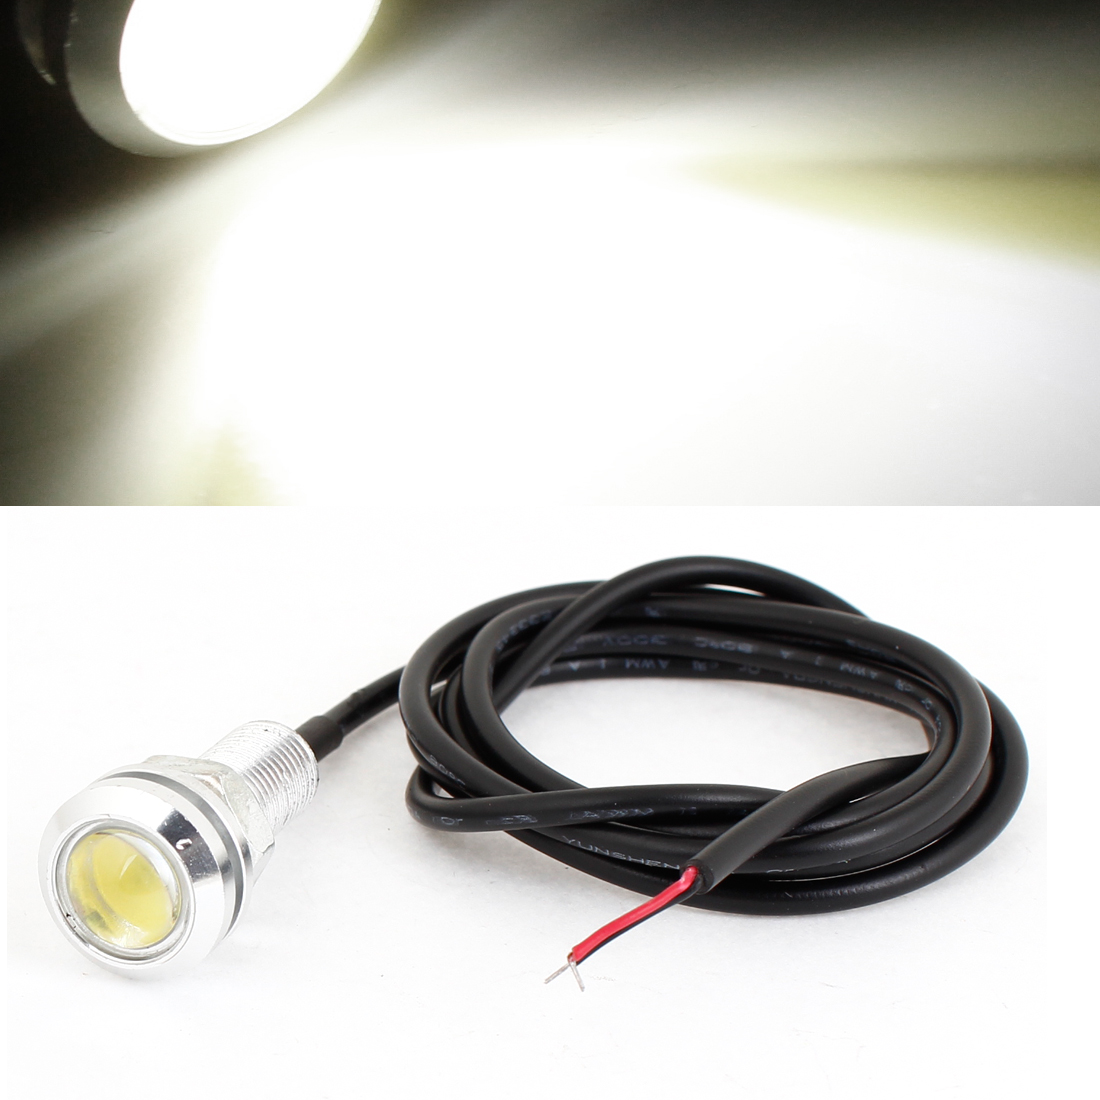 Car Automobile White LED Light Lamp Reverse Taillight Tail Foglight DC 12V